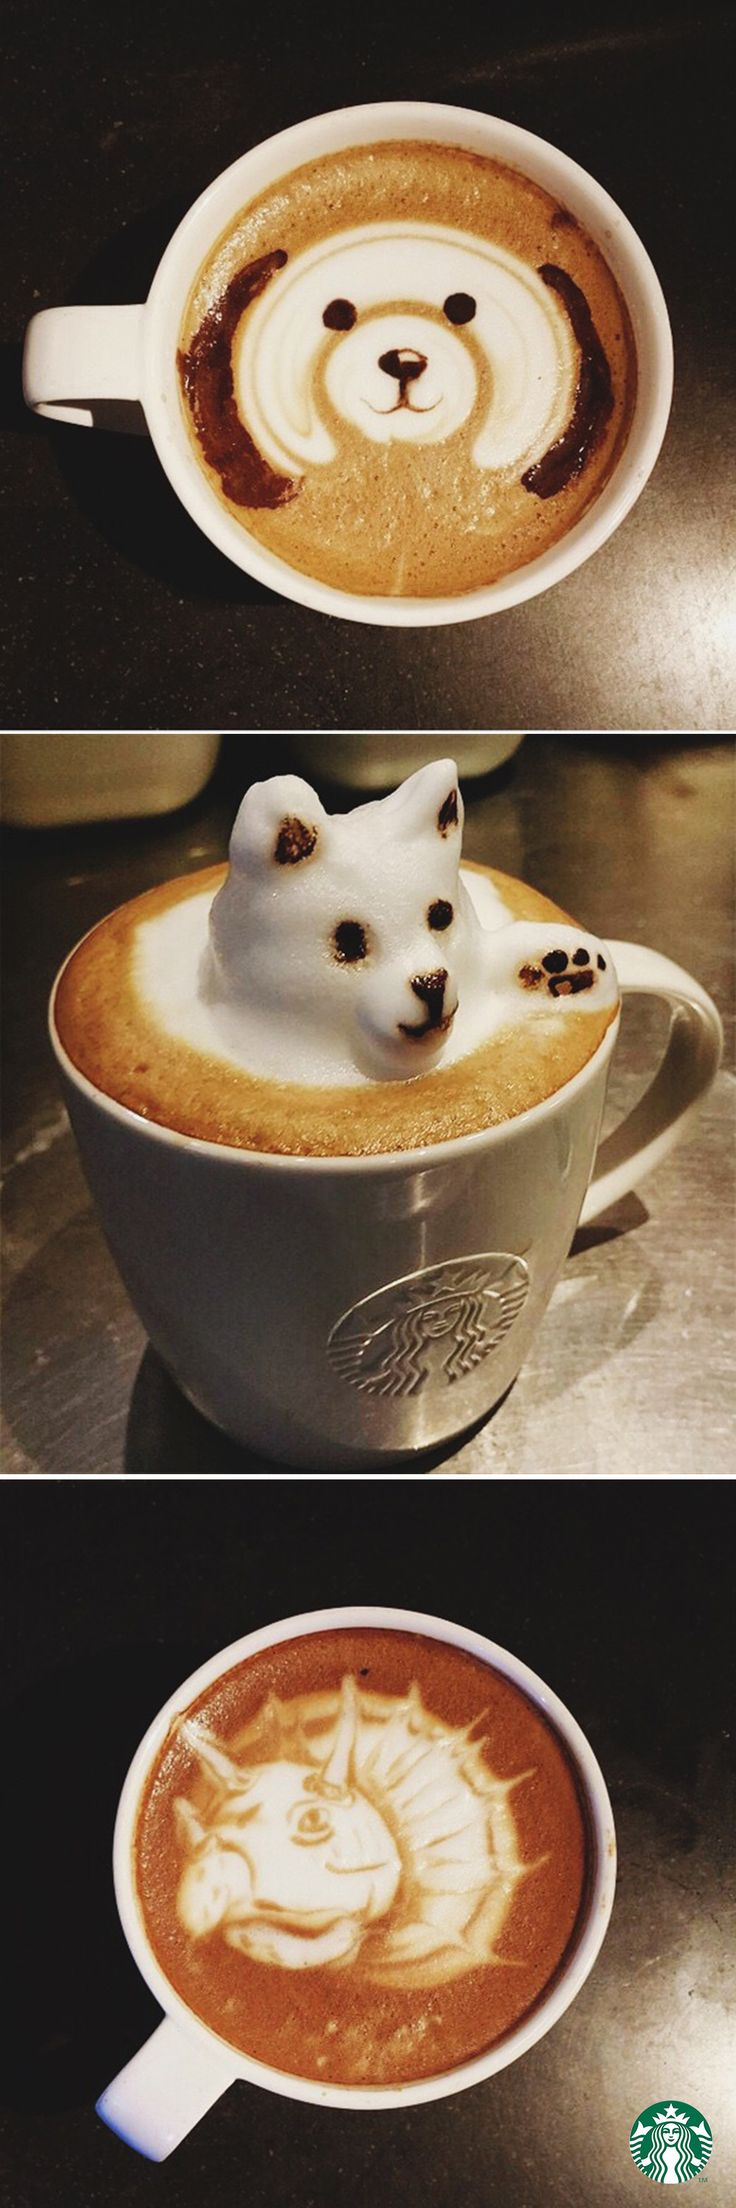 Ever Seen a Cat Made From Coffee?